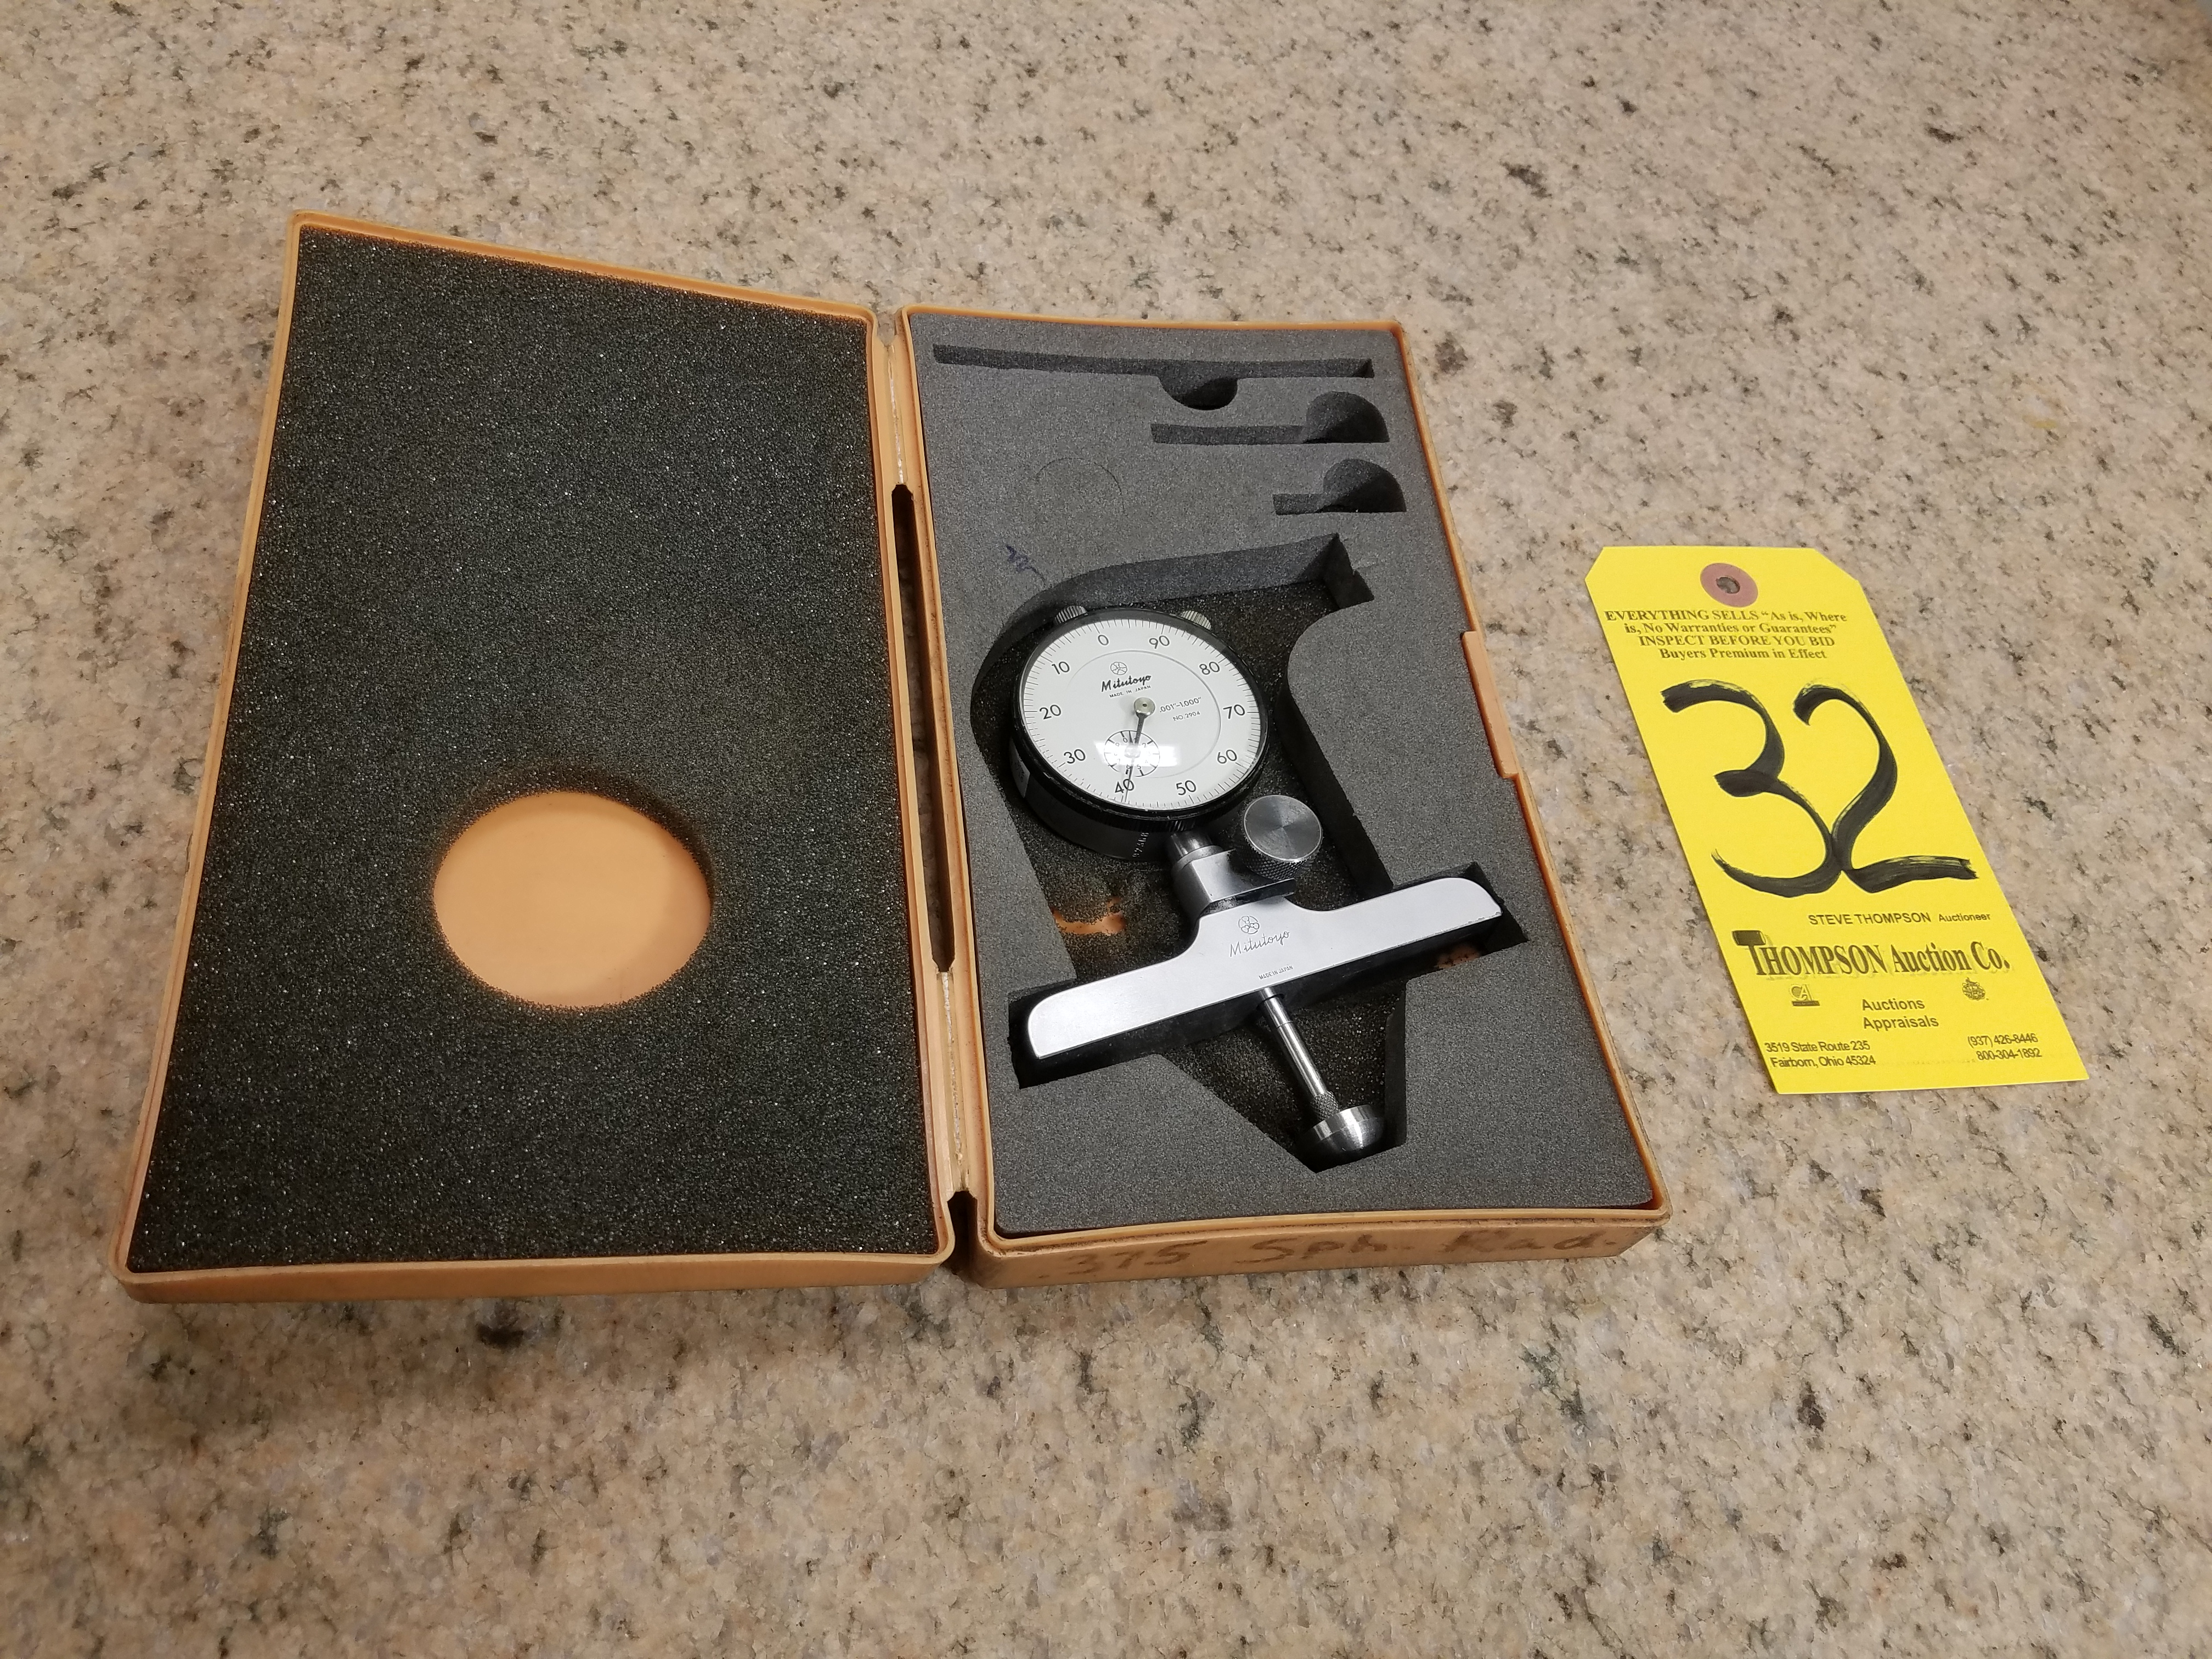 Lot 32 - Mitutoyo Spherical Radius Gage, .375 Inch